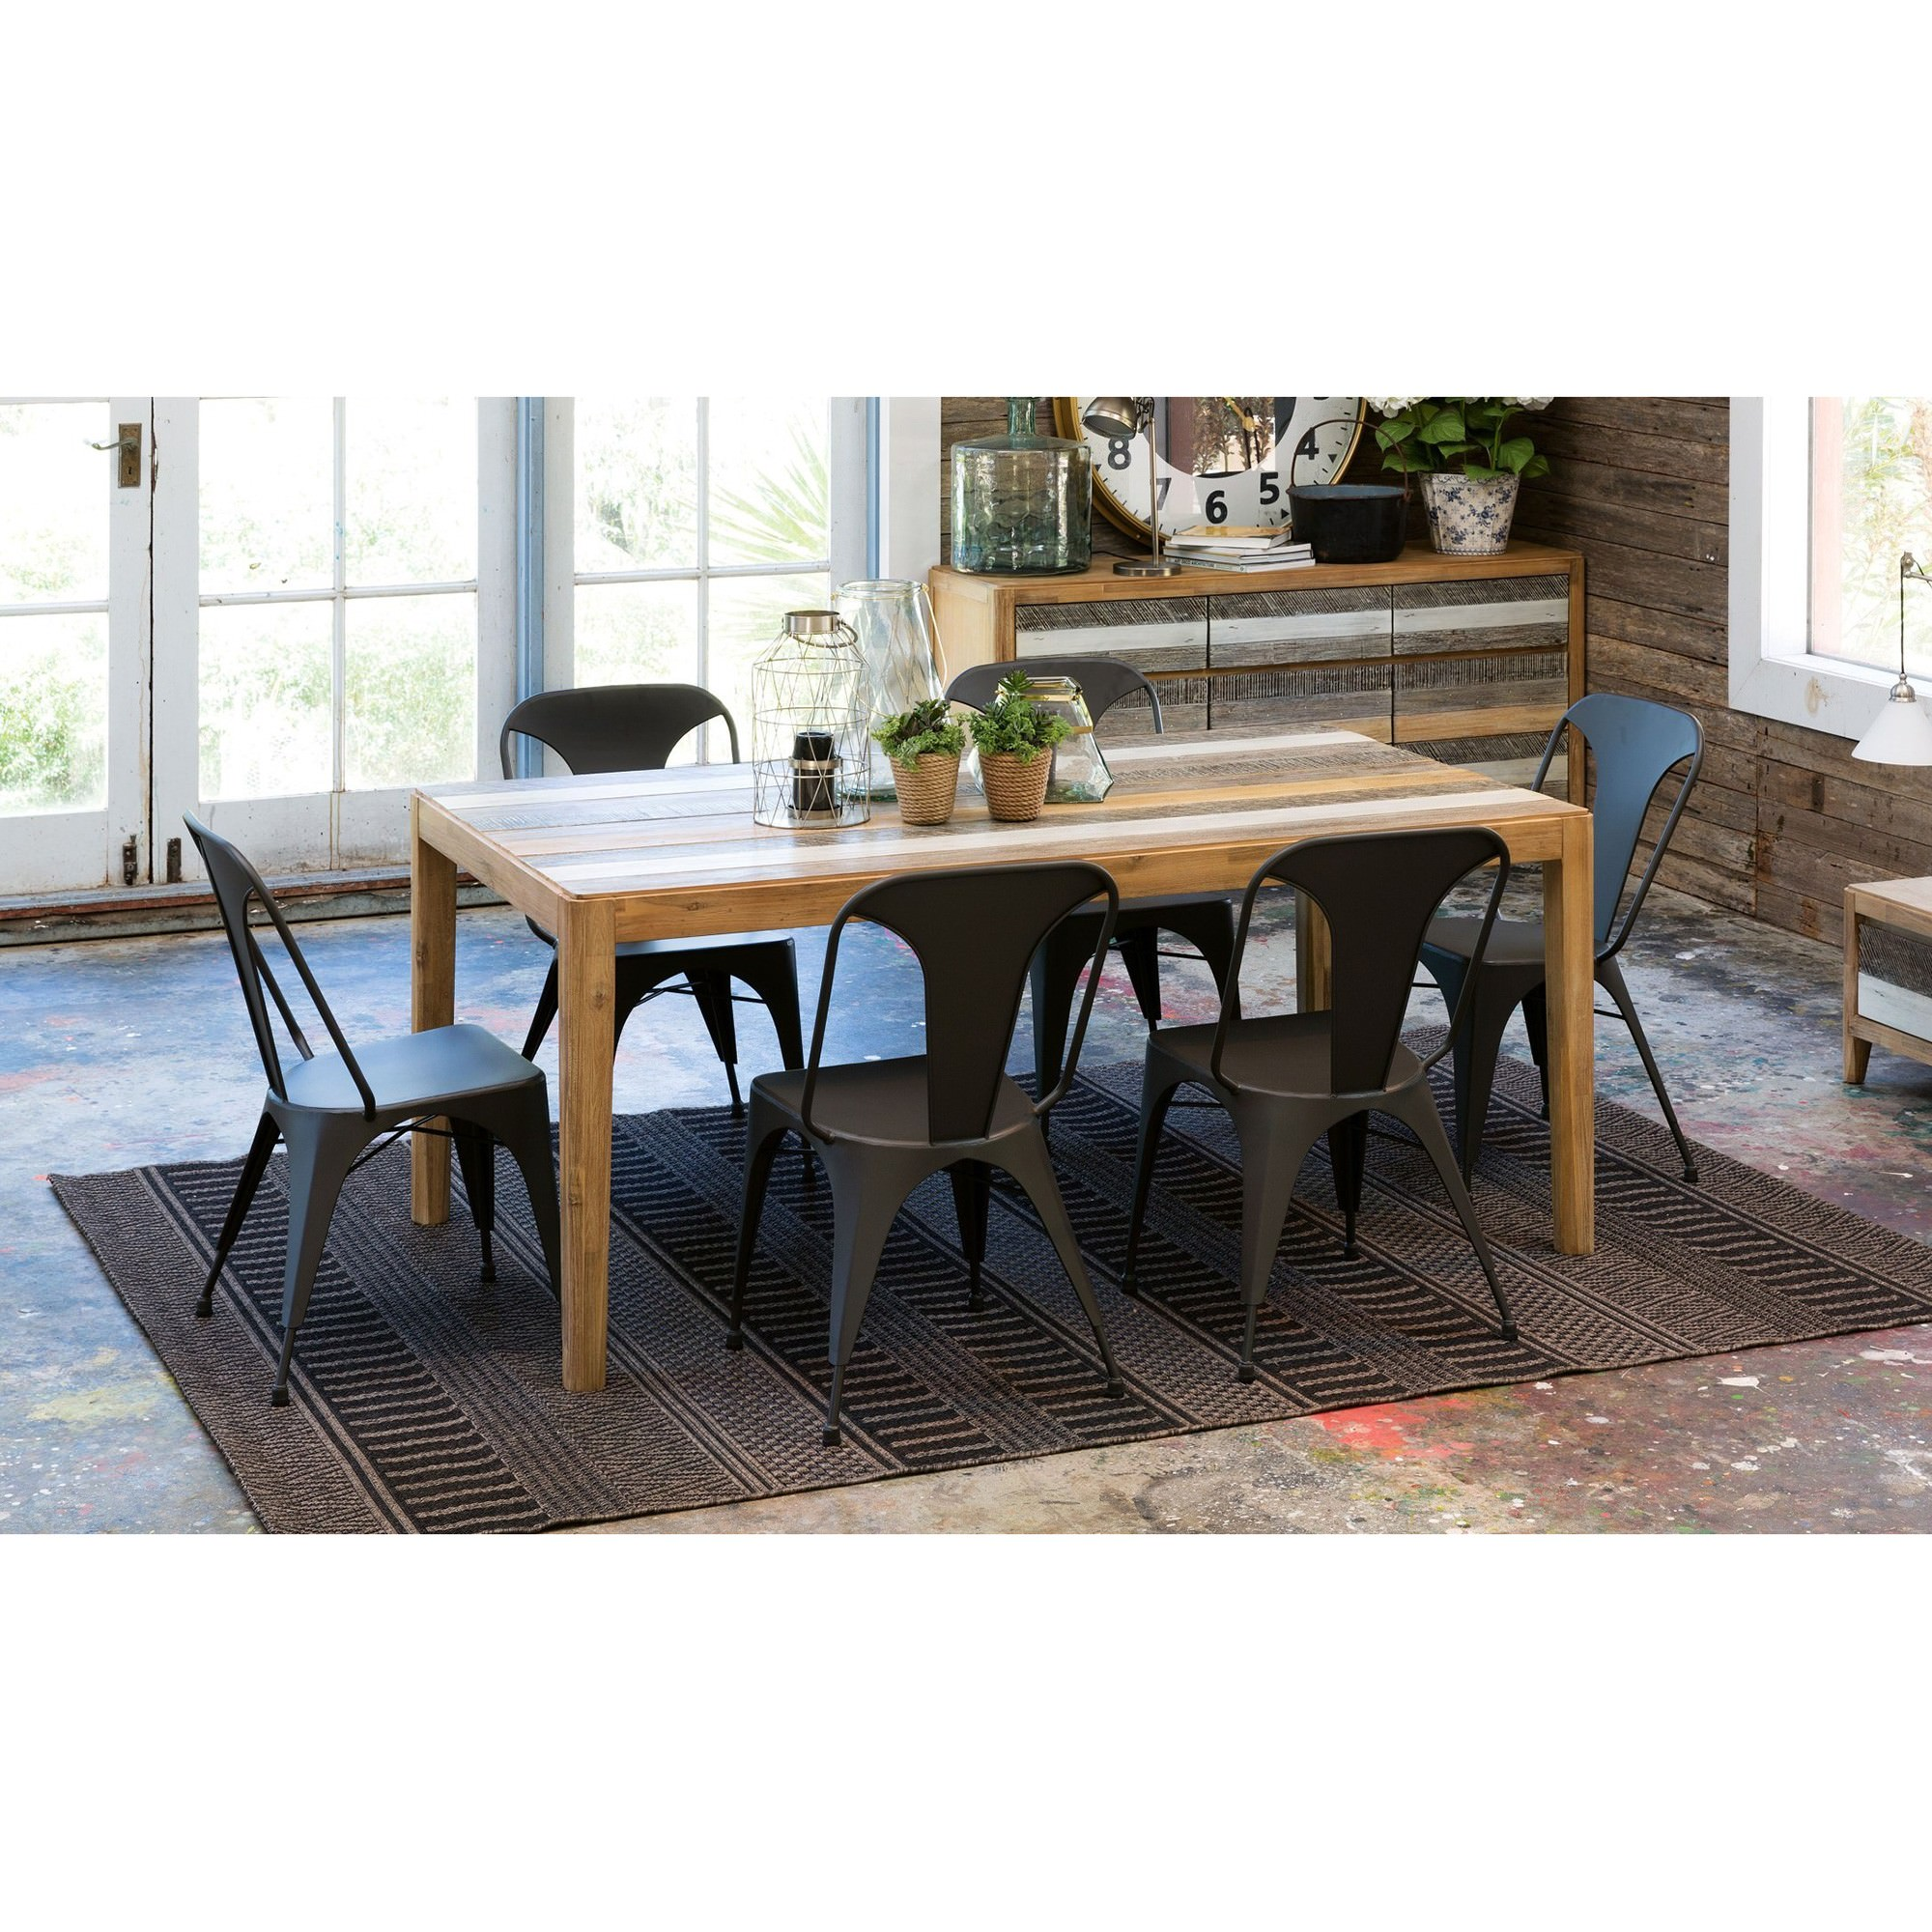 Hobson 9 Piece Acacia Timber Dining Table Set with Metal Chairs, 210cm